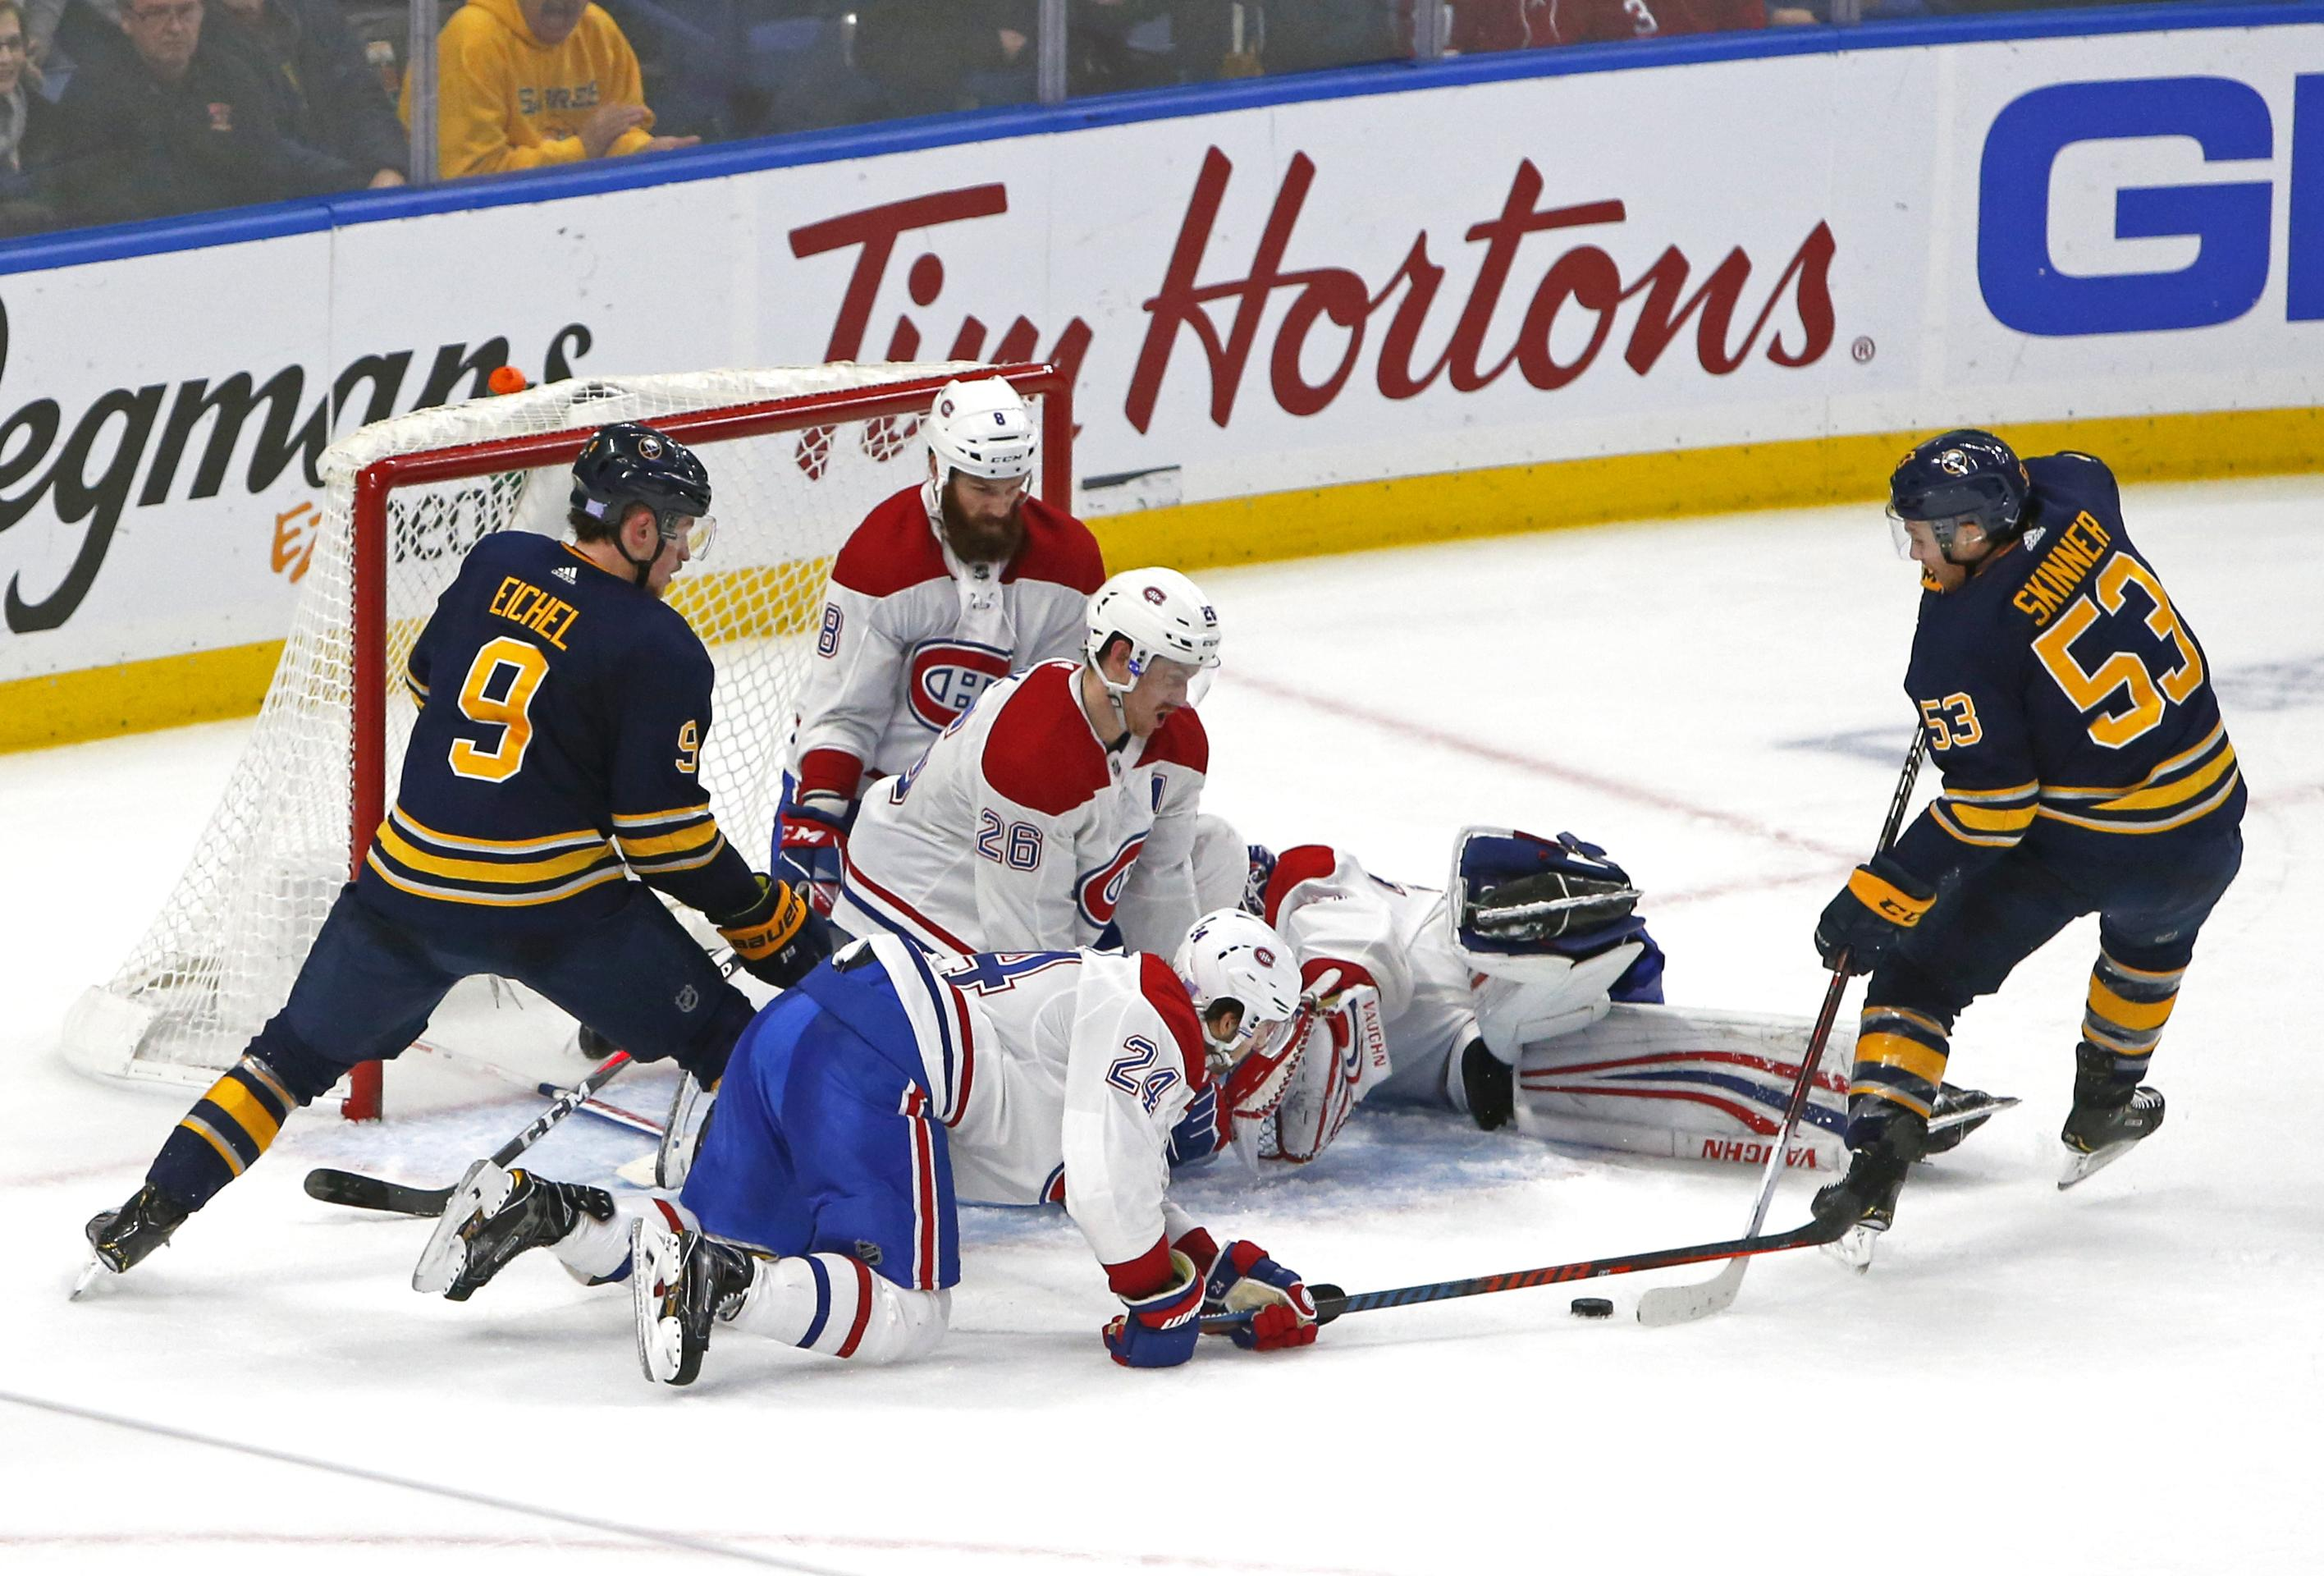 76c3c11ea Buffalo Sabres forward Jeff Skinner, right, scores the game-winning goal in  overtime